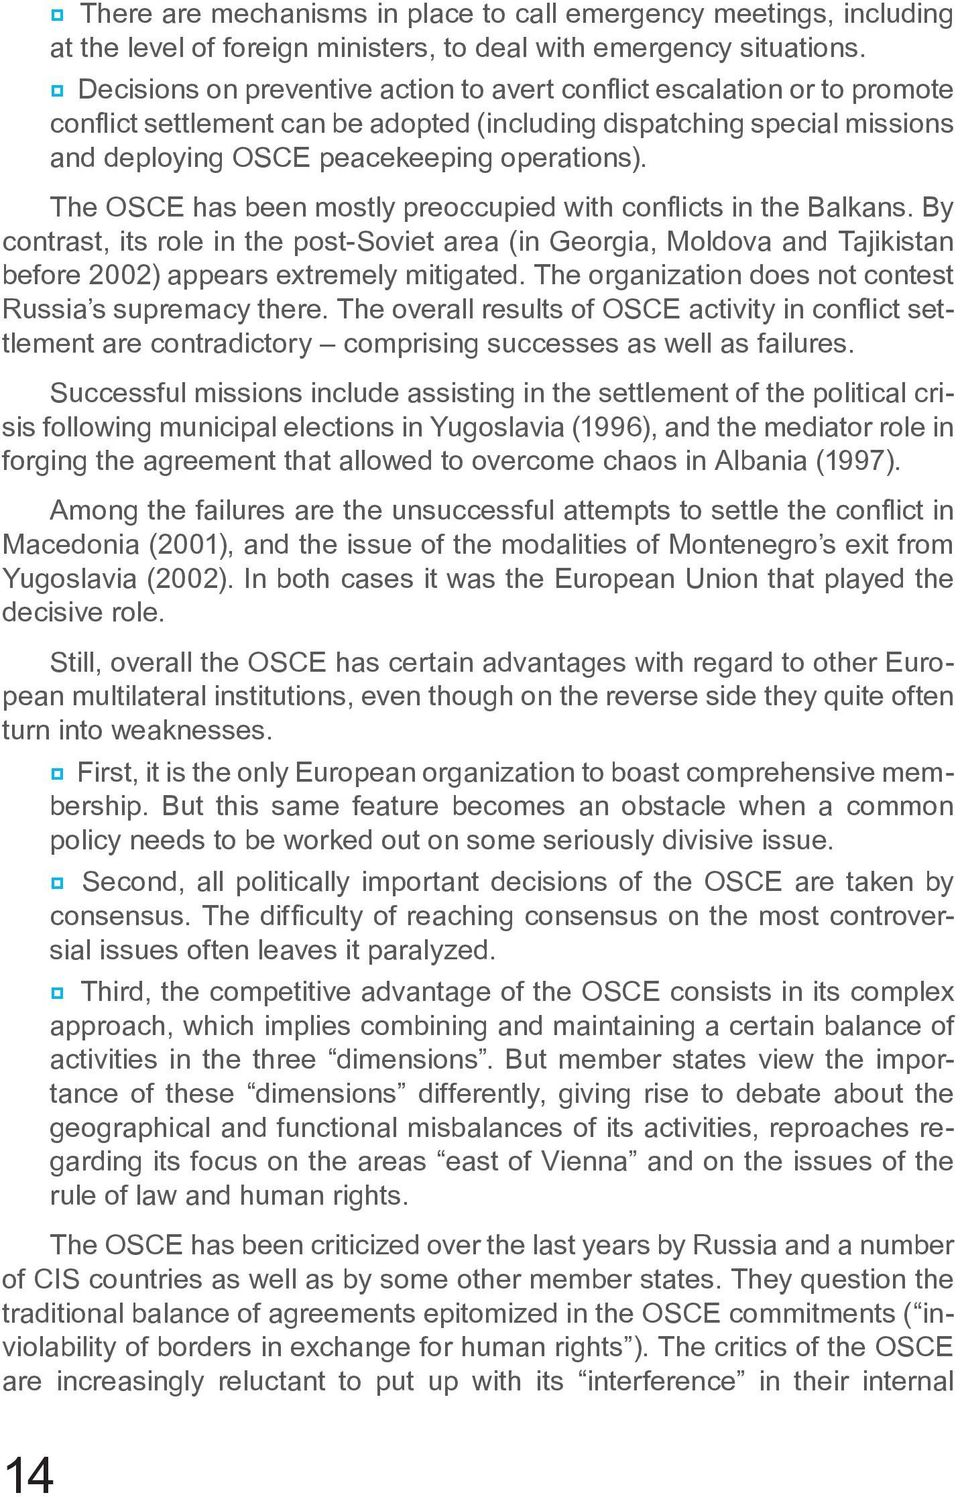 The OSCE has been mostly preoccupied with conflicts in the Balkans. By contrast, its role in the post-soviet area (in Georgia, Moldova and Tajikistan before 2002) appears extremely mitigated.